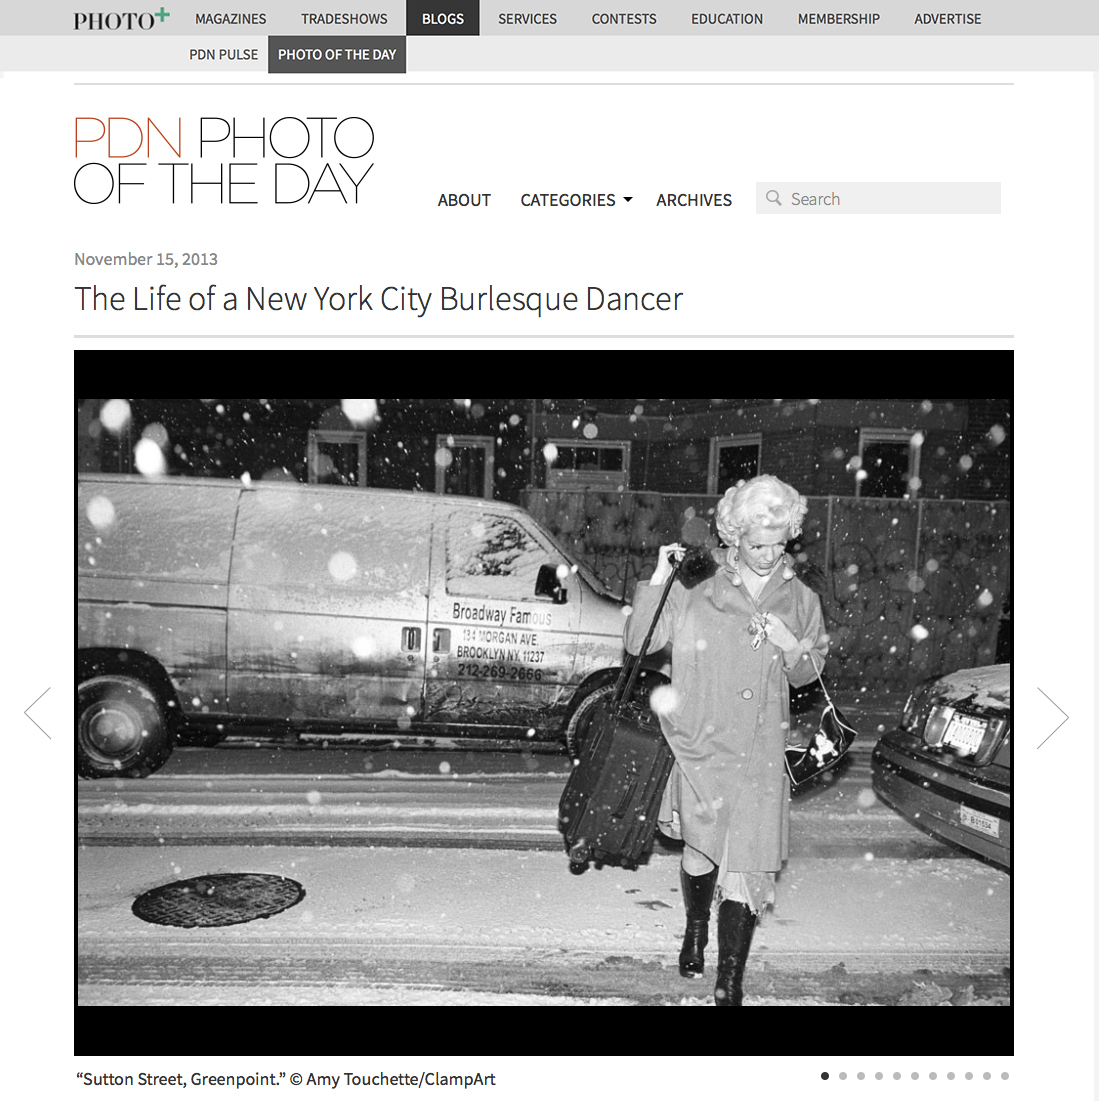 PDN Photo of the Day,Shoot the Arrow - NOVEMBER 15, 2013 PDN Photo of the Day displays photographs selected by the editors of Photo District News, a publication for photo professionals.